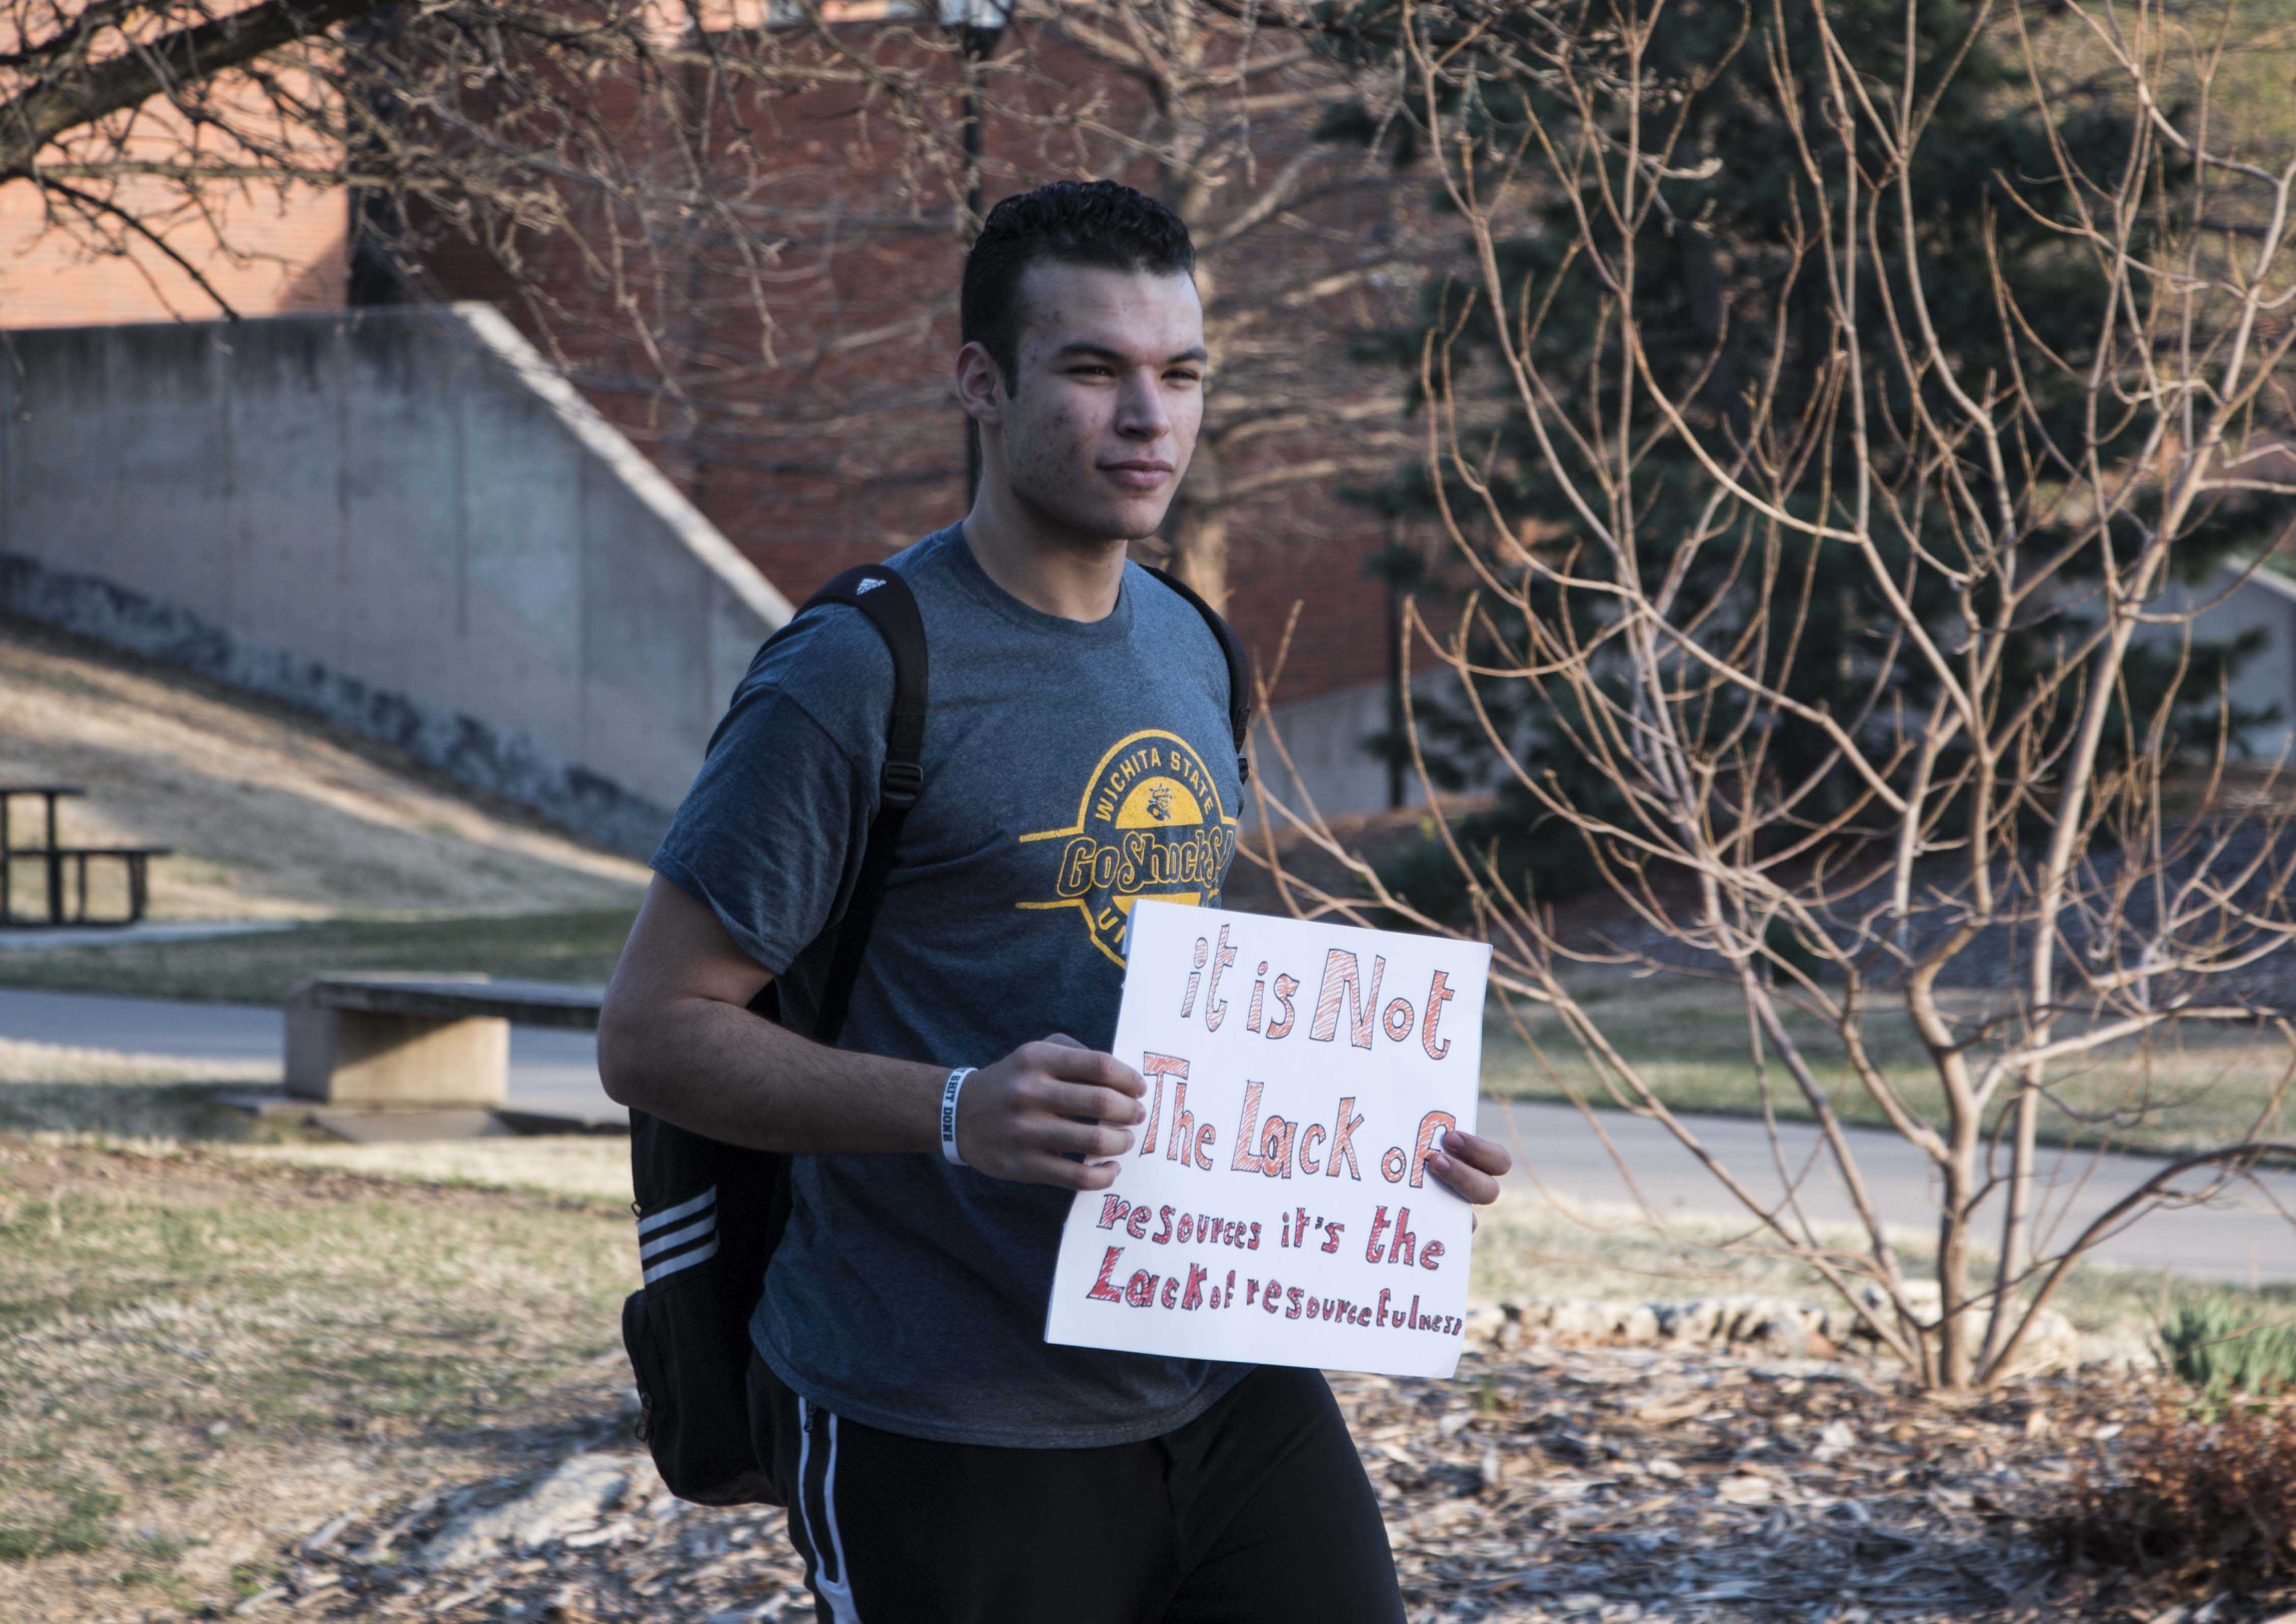 Amr Wahba, a protester, holds a sign in opposition to the construction of a YMCA facility on Wichita State's campus. The proposal calls for a student fee of $7.75 per credit hour to be added to financially support the facility.